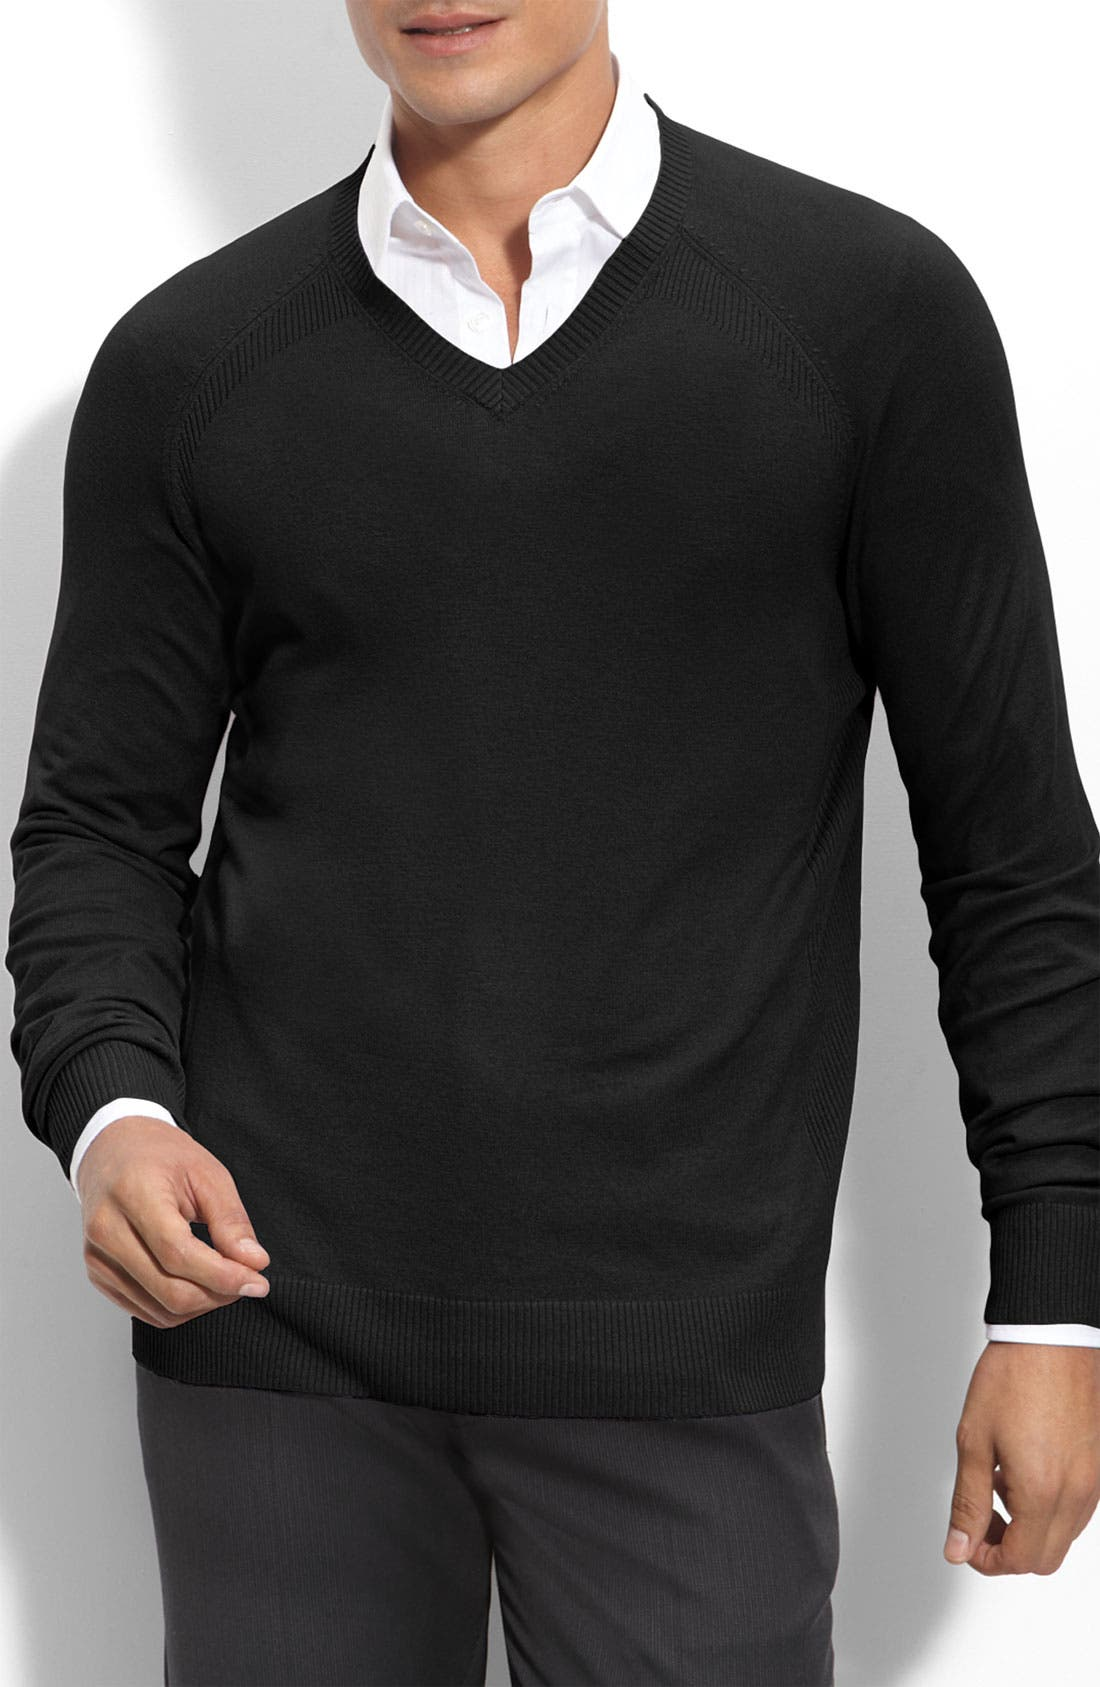 Alternate Image 1 Selected - Calibrate Trim Fit Cotton Blend V-Neck Sweater